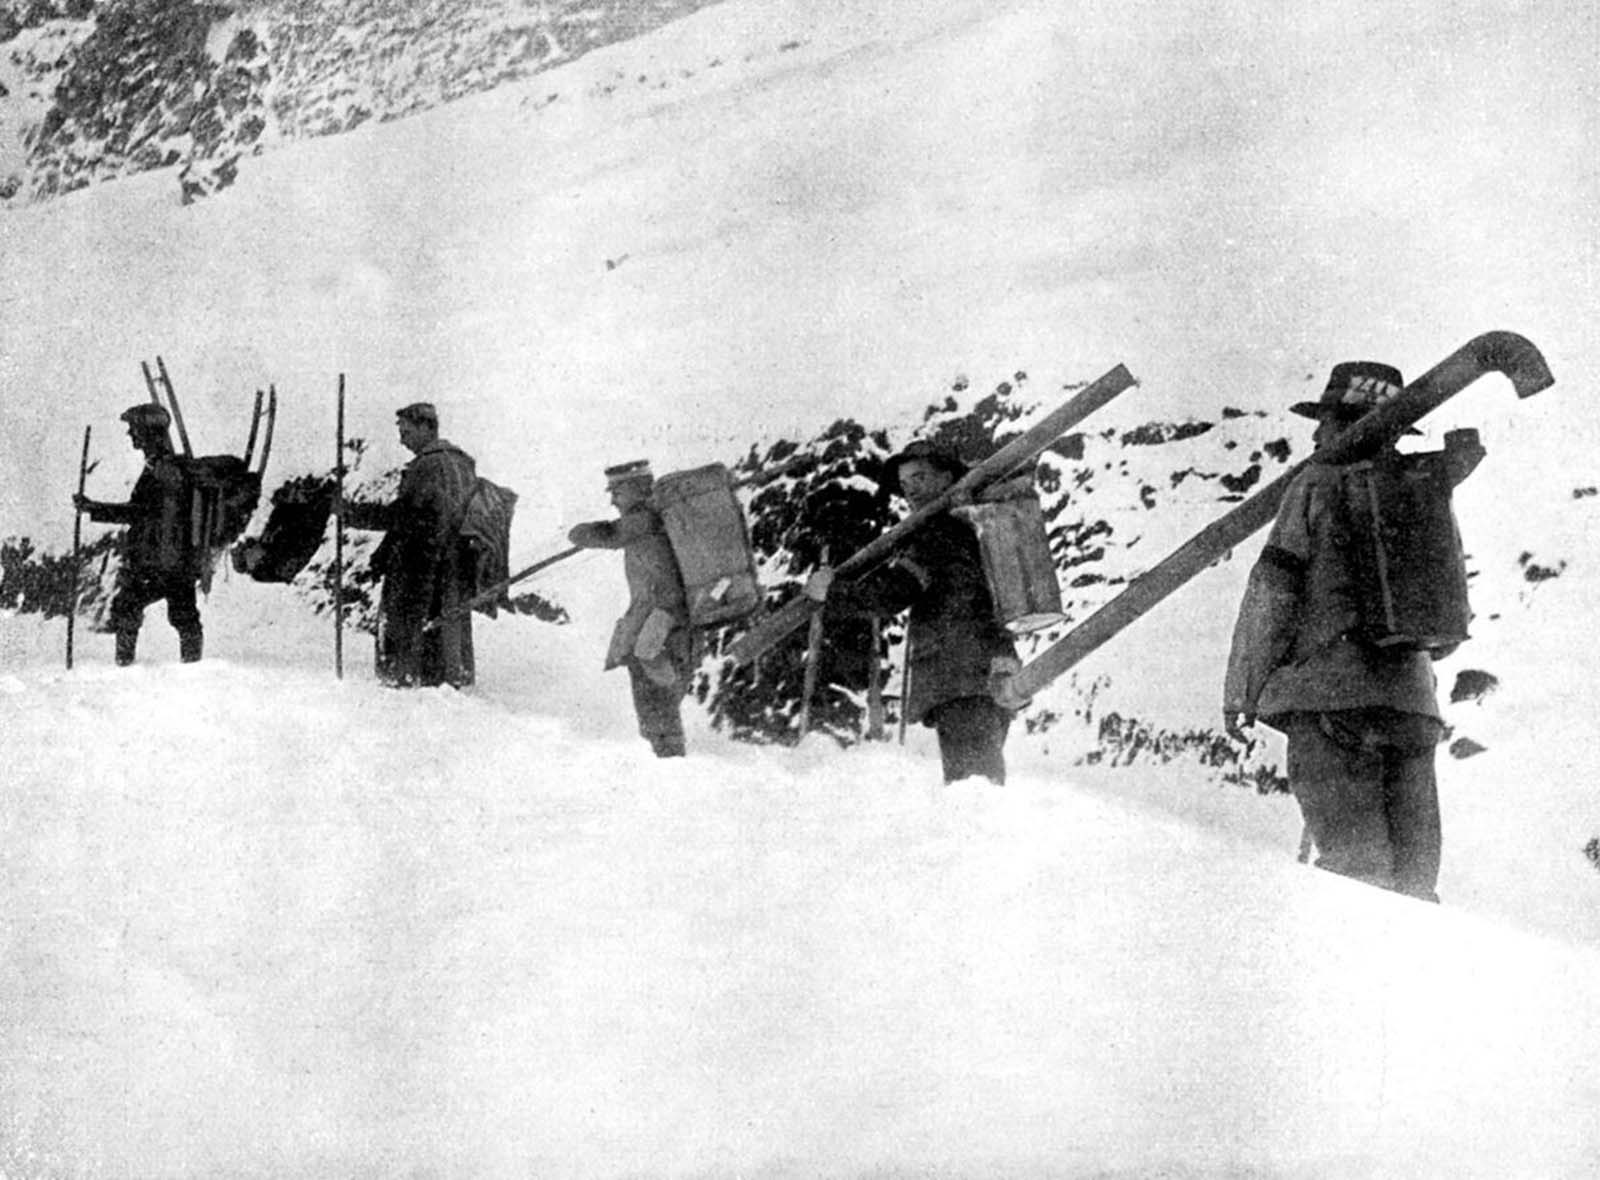 A Hungarian Workers Unit transports oven components for use in soldier shelters in the Dolomites. 1916.